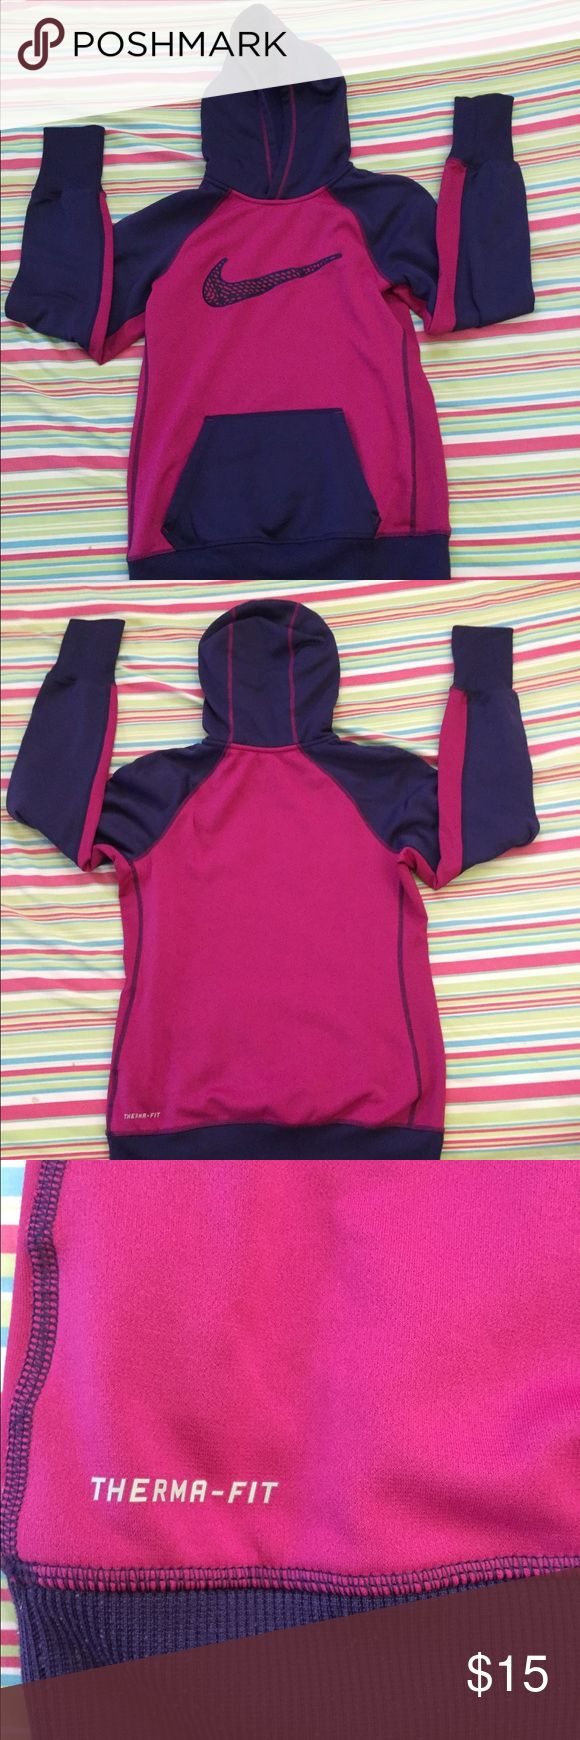 Nike pullover hoodie/sweatshirt Thermal fit and is really soft and good quality material. Never worn. Great for exercise outside like running or just running errands. Nike Tops Sweatshirts & Hoodies